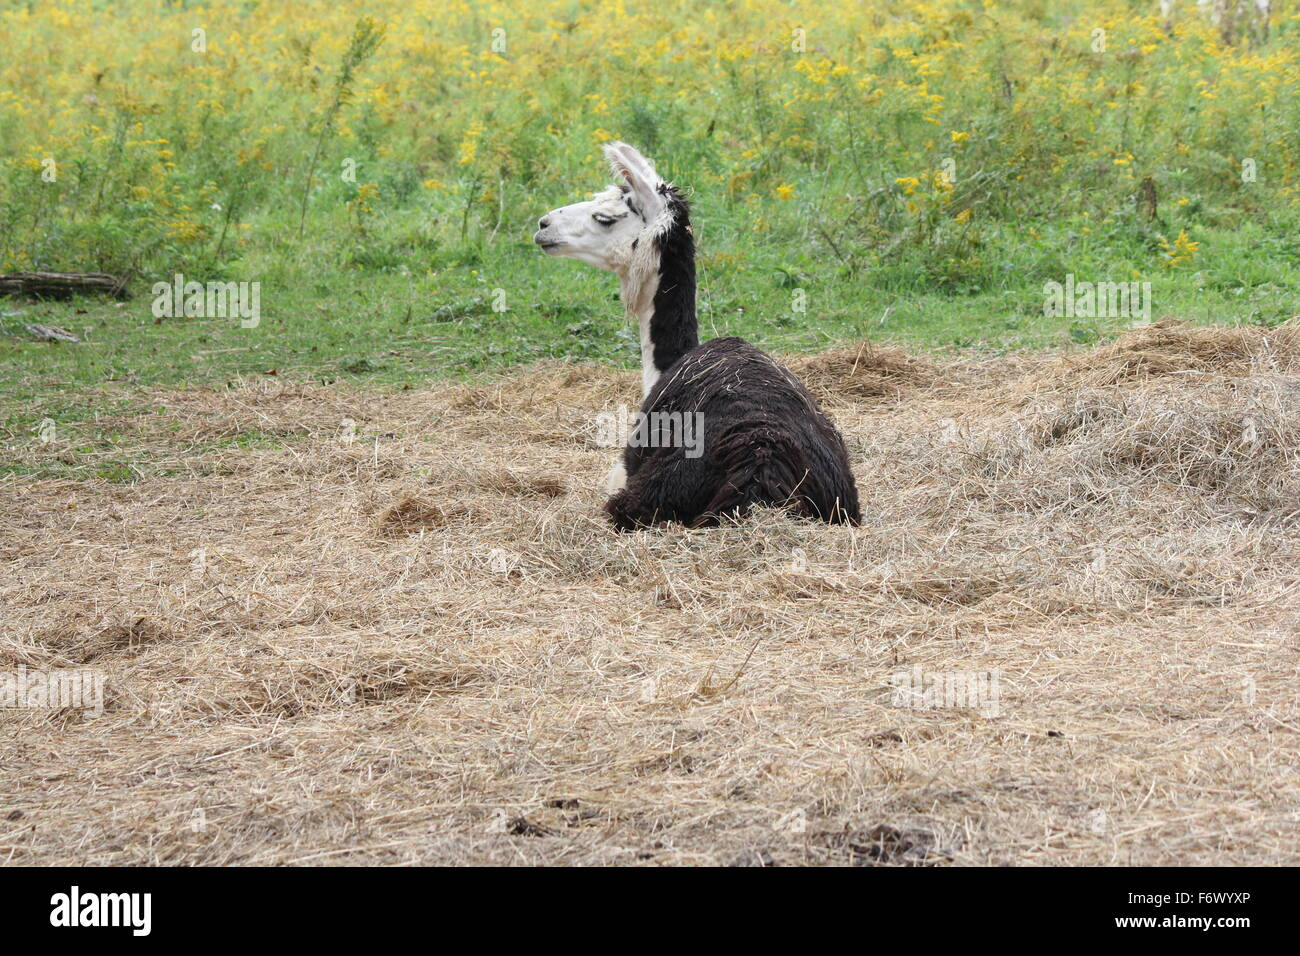 Llama on a small hobby farm, laying in a pile of straw. The Llama is a domesticated South American camelid - Stock Image